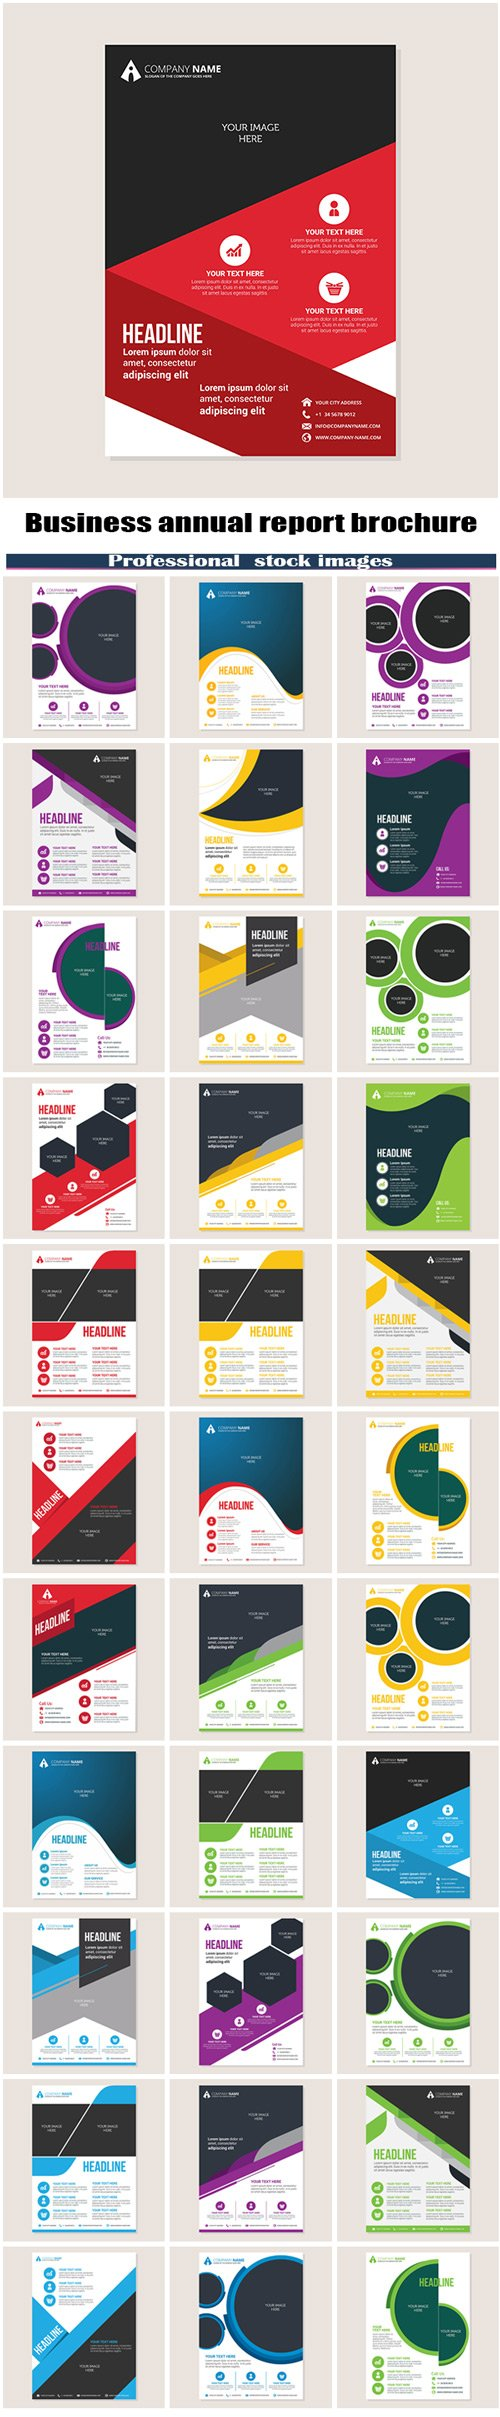 Corporate business annual report brochure #2